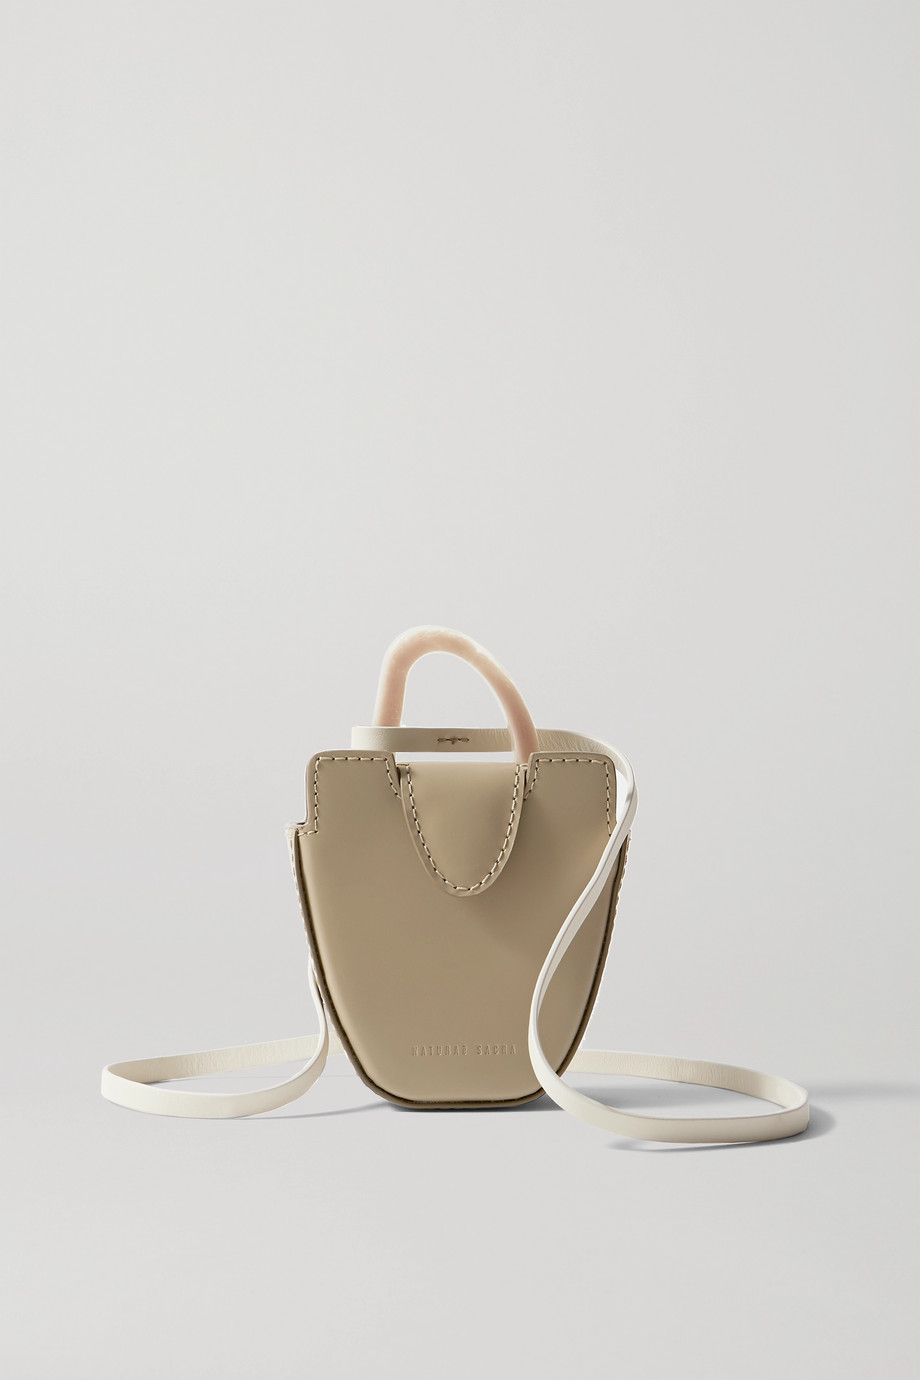 NATURAE SACRA + NET SUSTAIN Ourea mini leather and resin tote